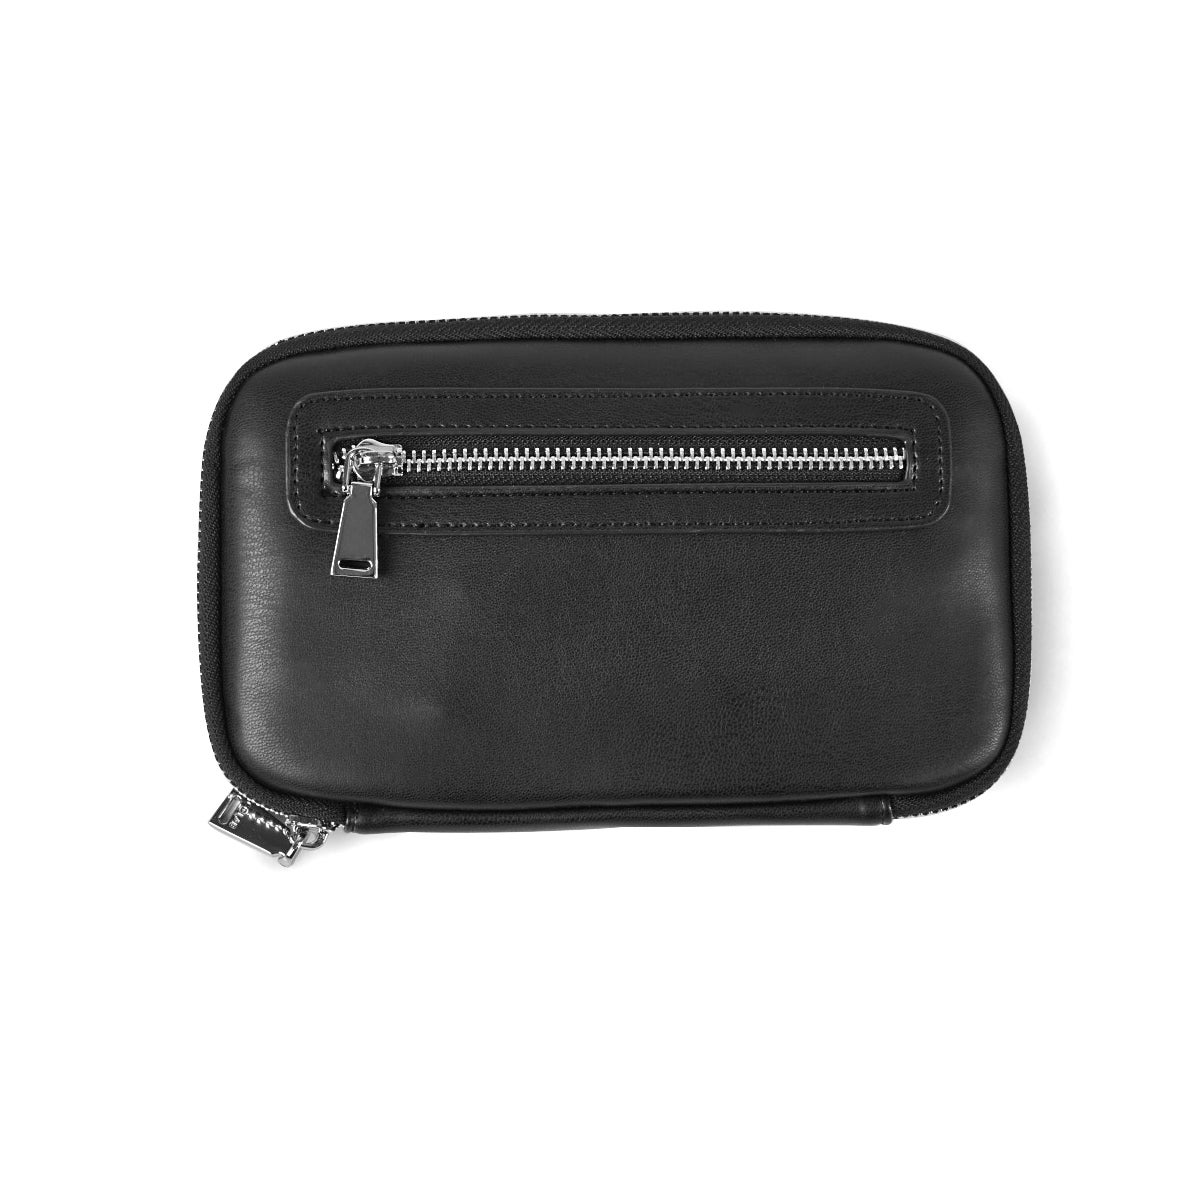 Lds Harlow World black wallet